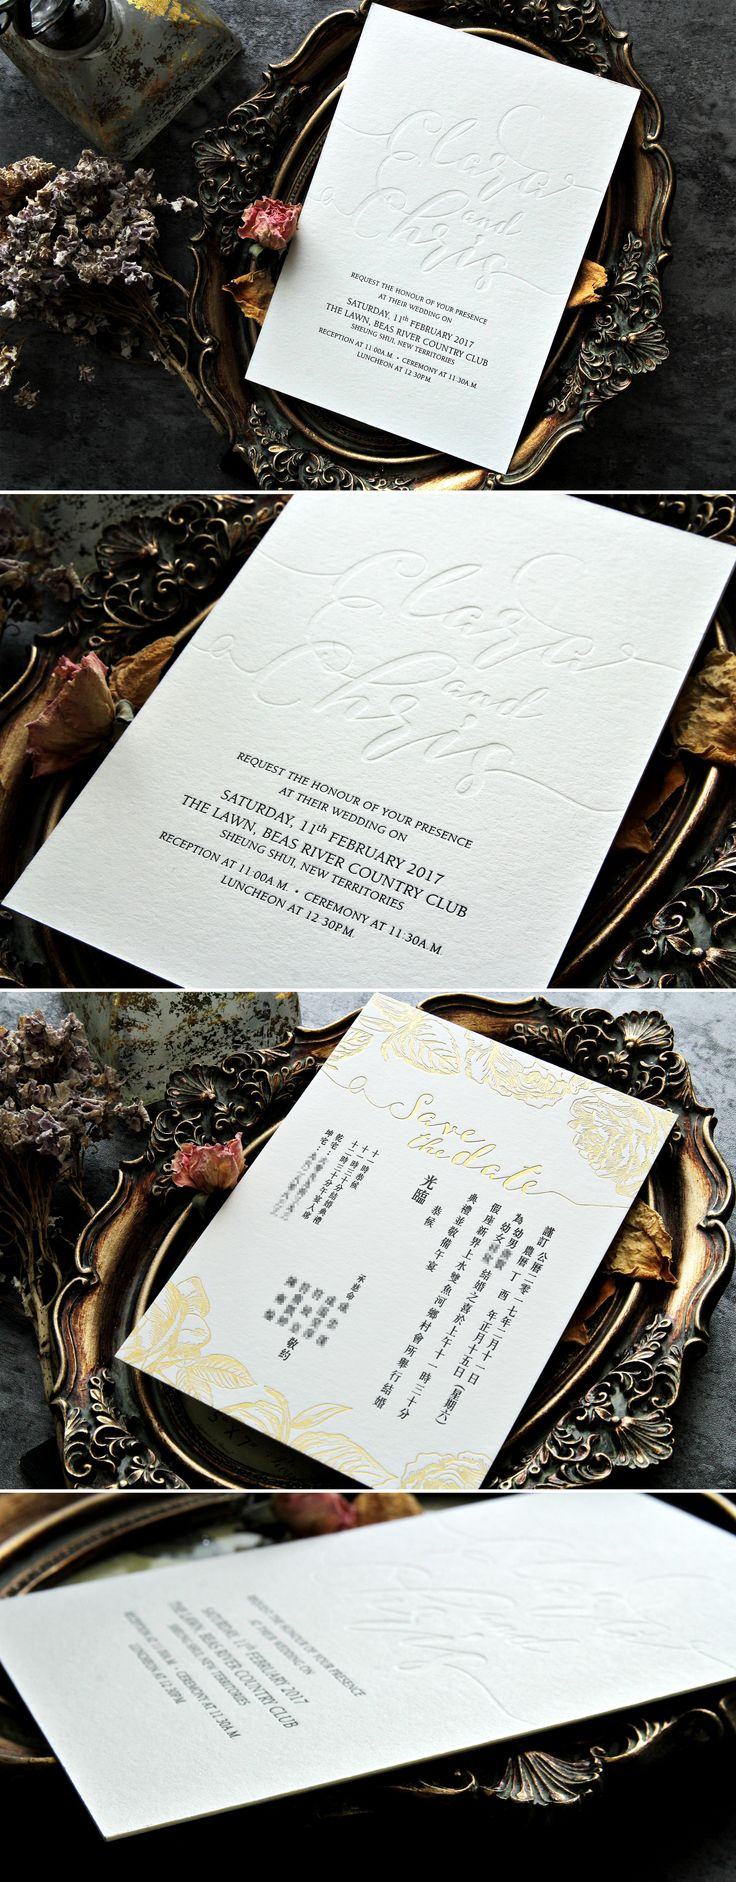 marriage invitation card in hindi language%0A Esto es muy caro   Como hacer solo el ombre de nosotros asi y el  Invitation  Card DesignWedding Invitation CardsModern